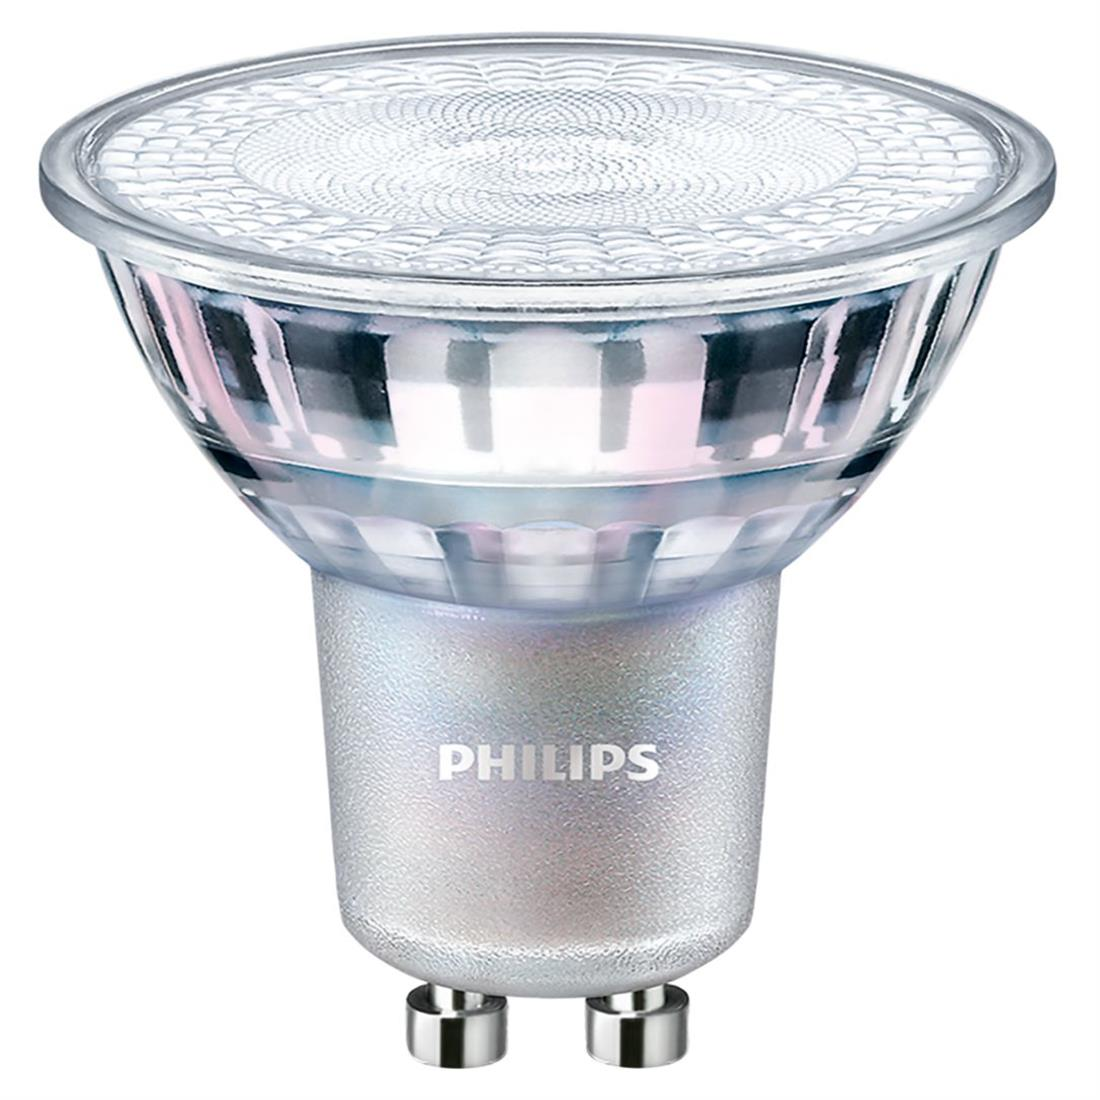 PHILIPS GU10 ledlamp dimbaar warmwit 2700 36gr (3,7W vervangt 35W) 927